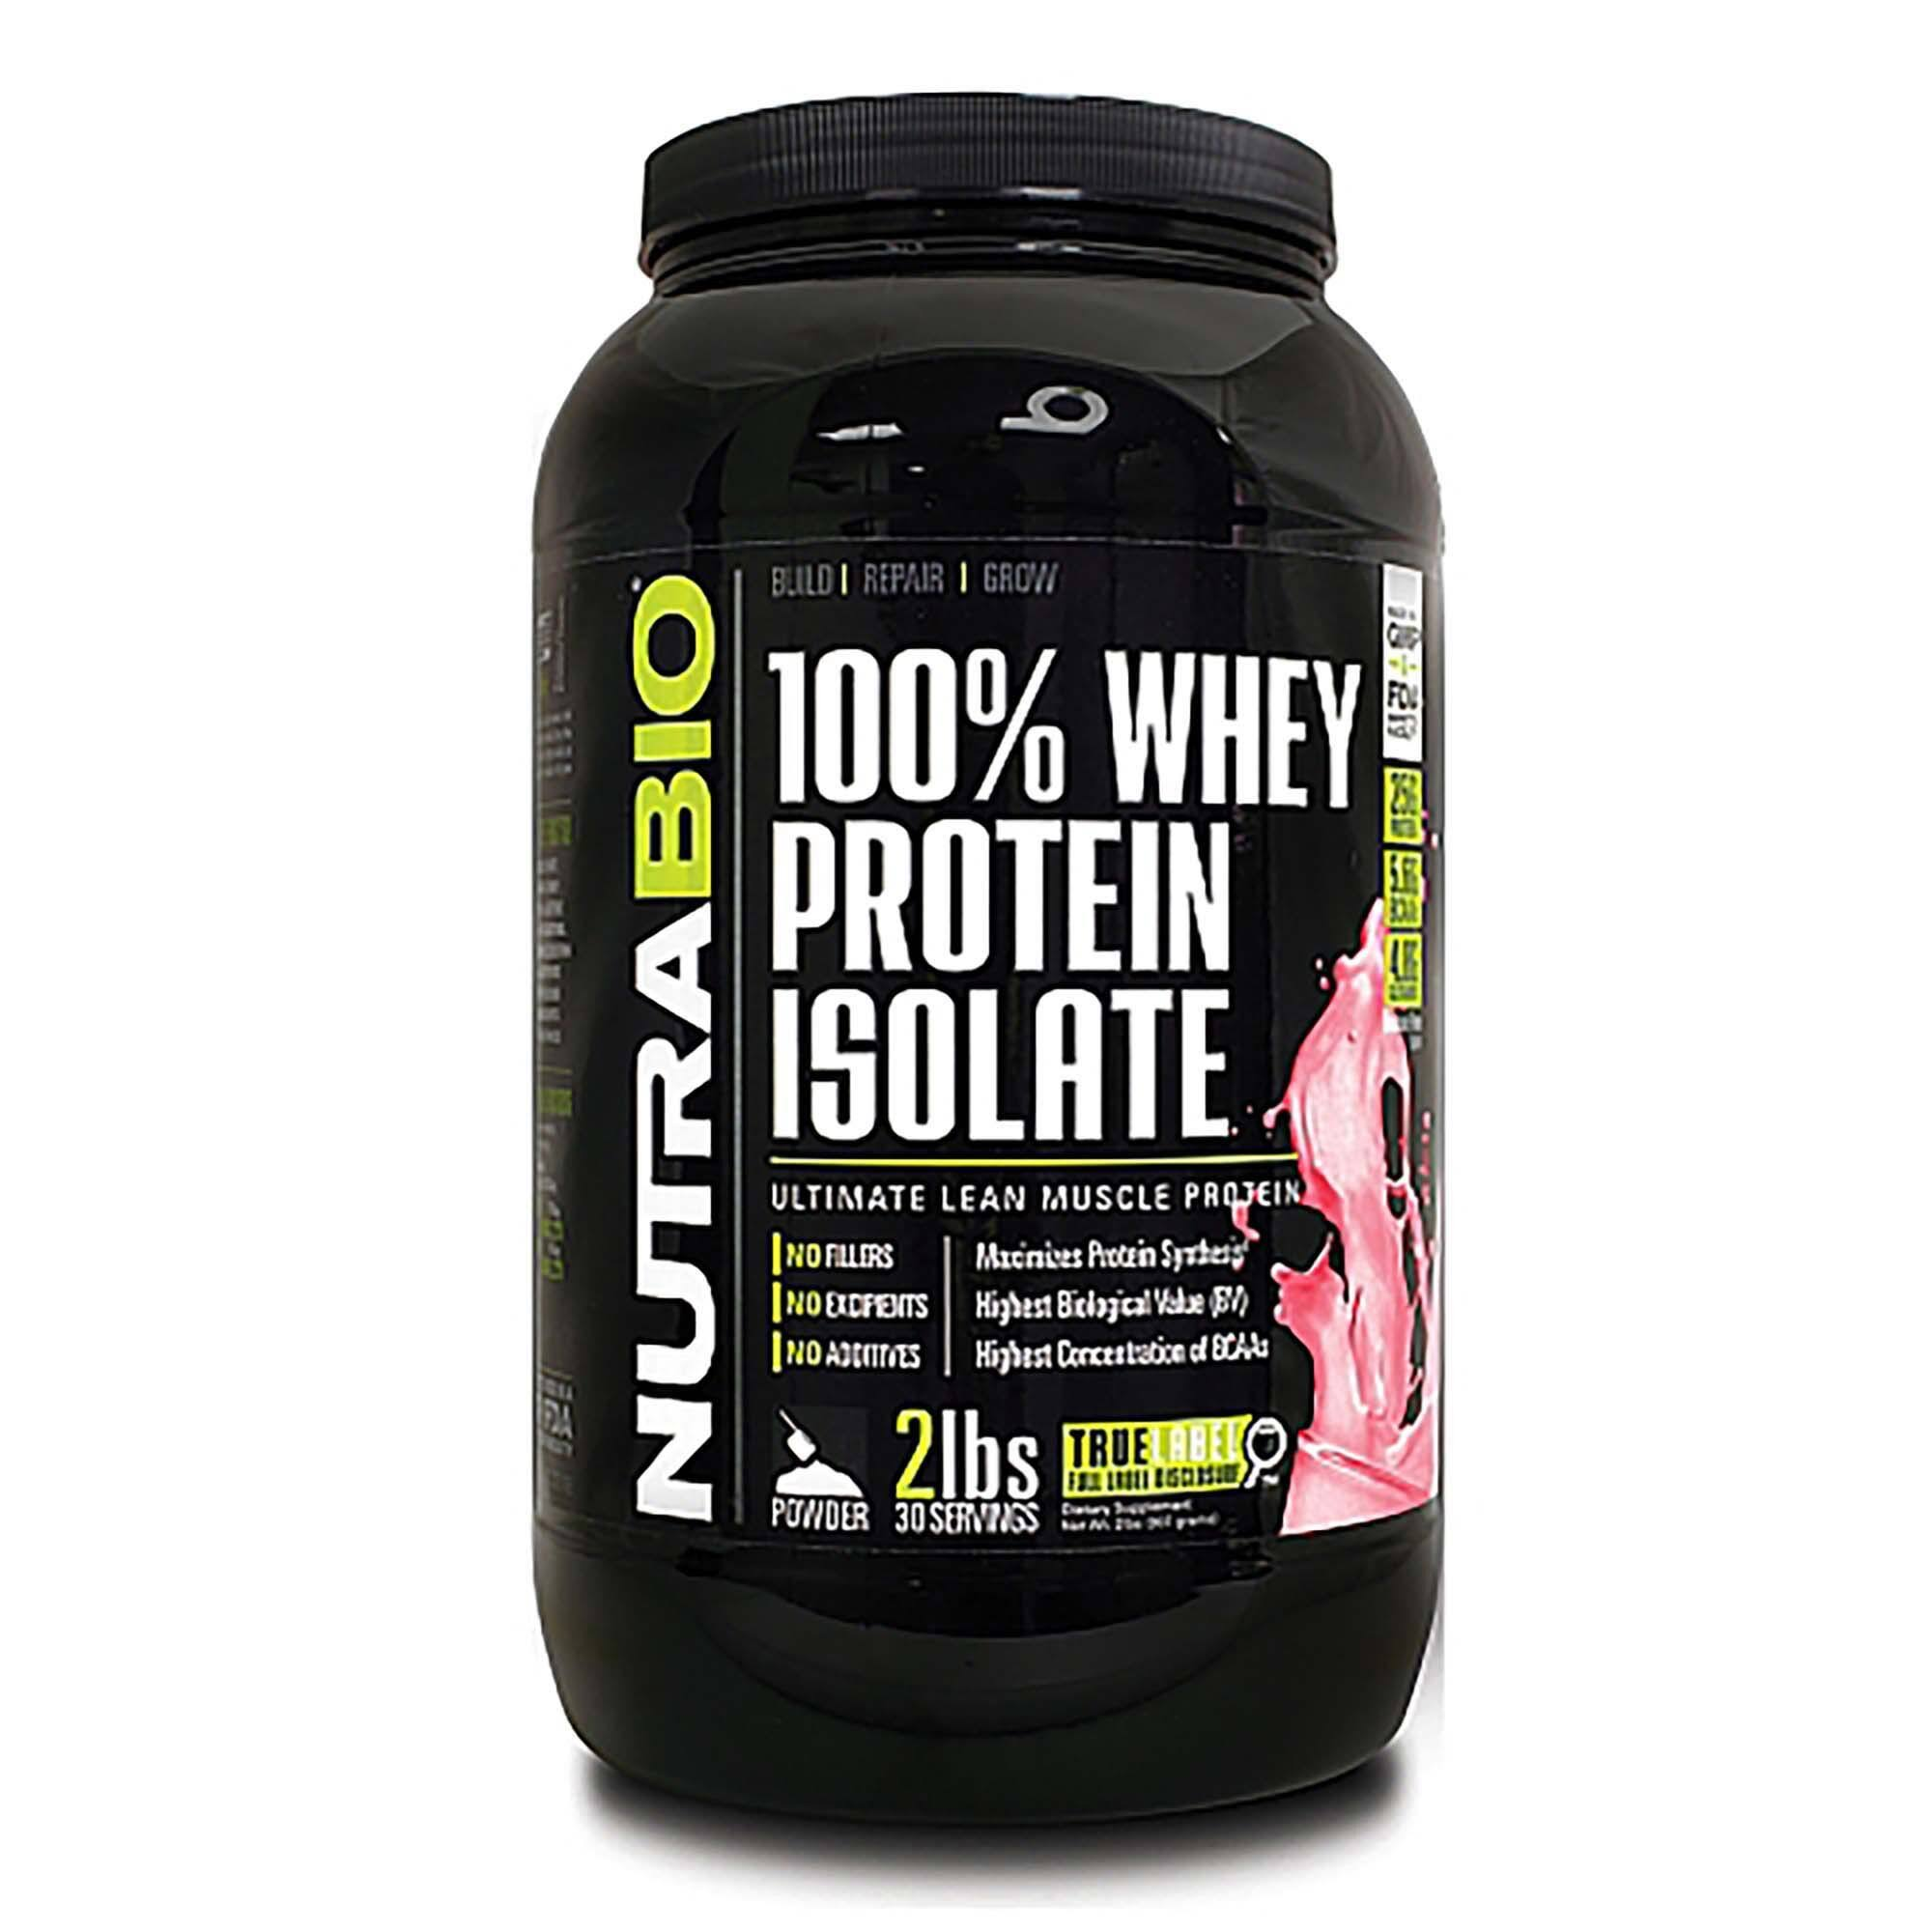 NutraBio Whey Protein Isolate - 2lbs, Strawberry